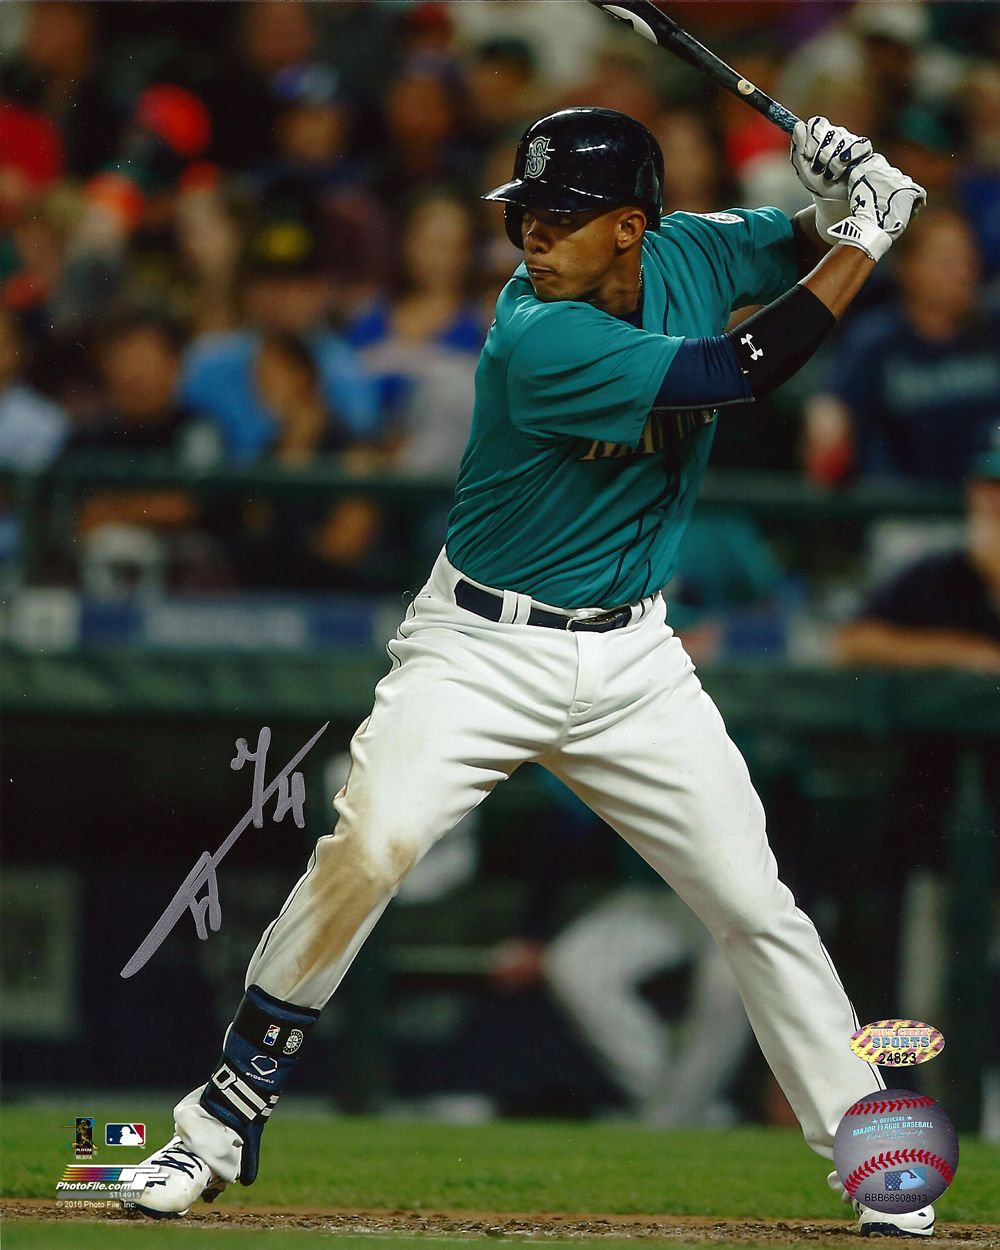 Ketel Marte Autographed 8x10 Photo Seattle Mariners